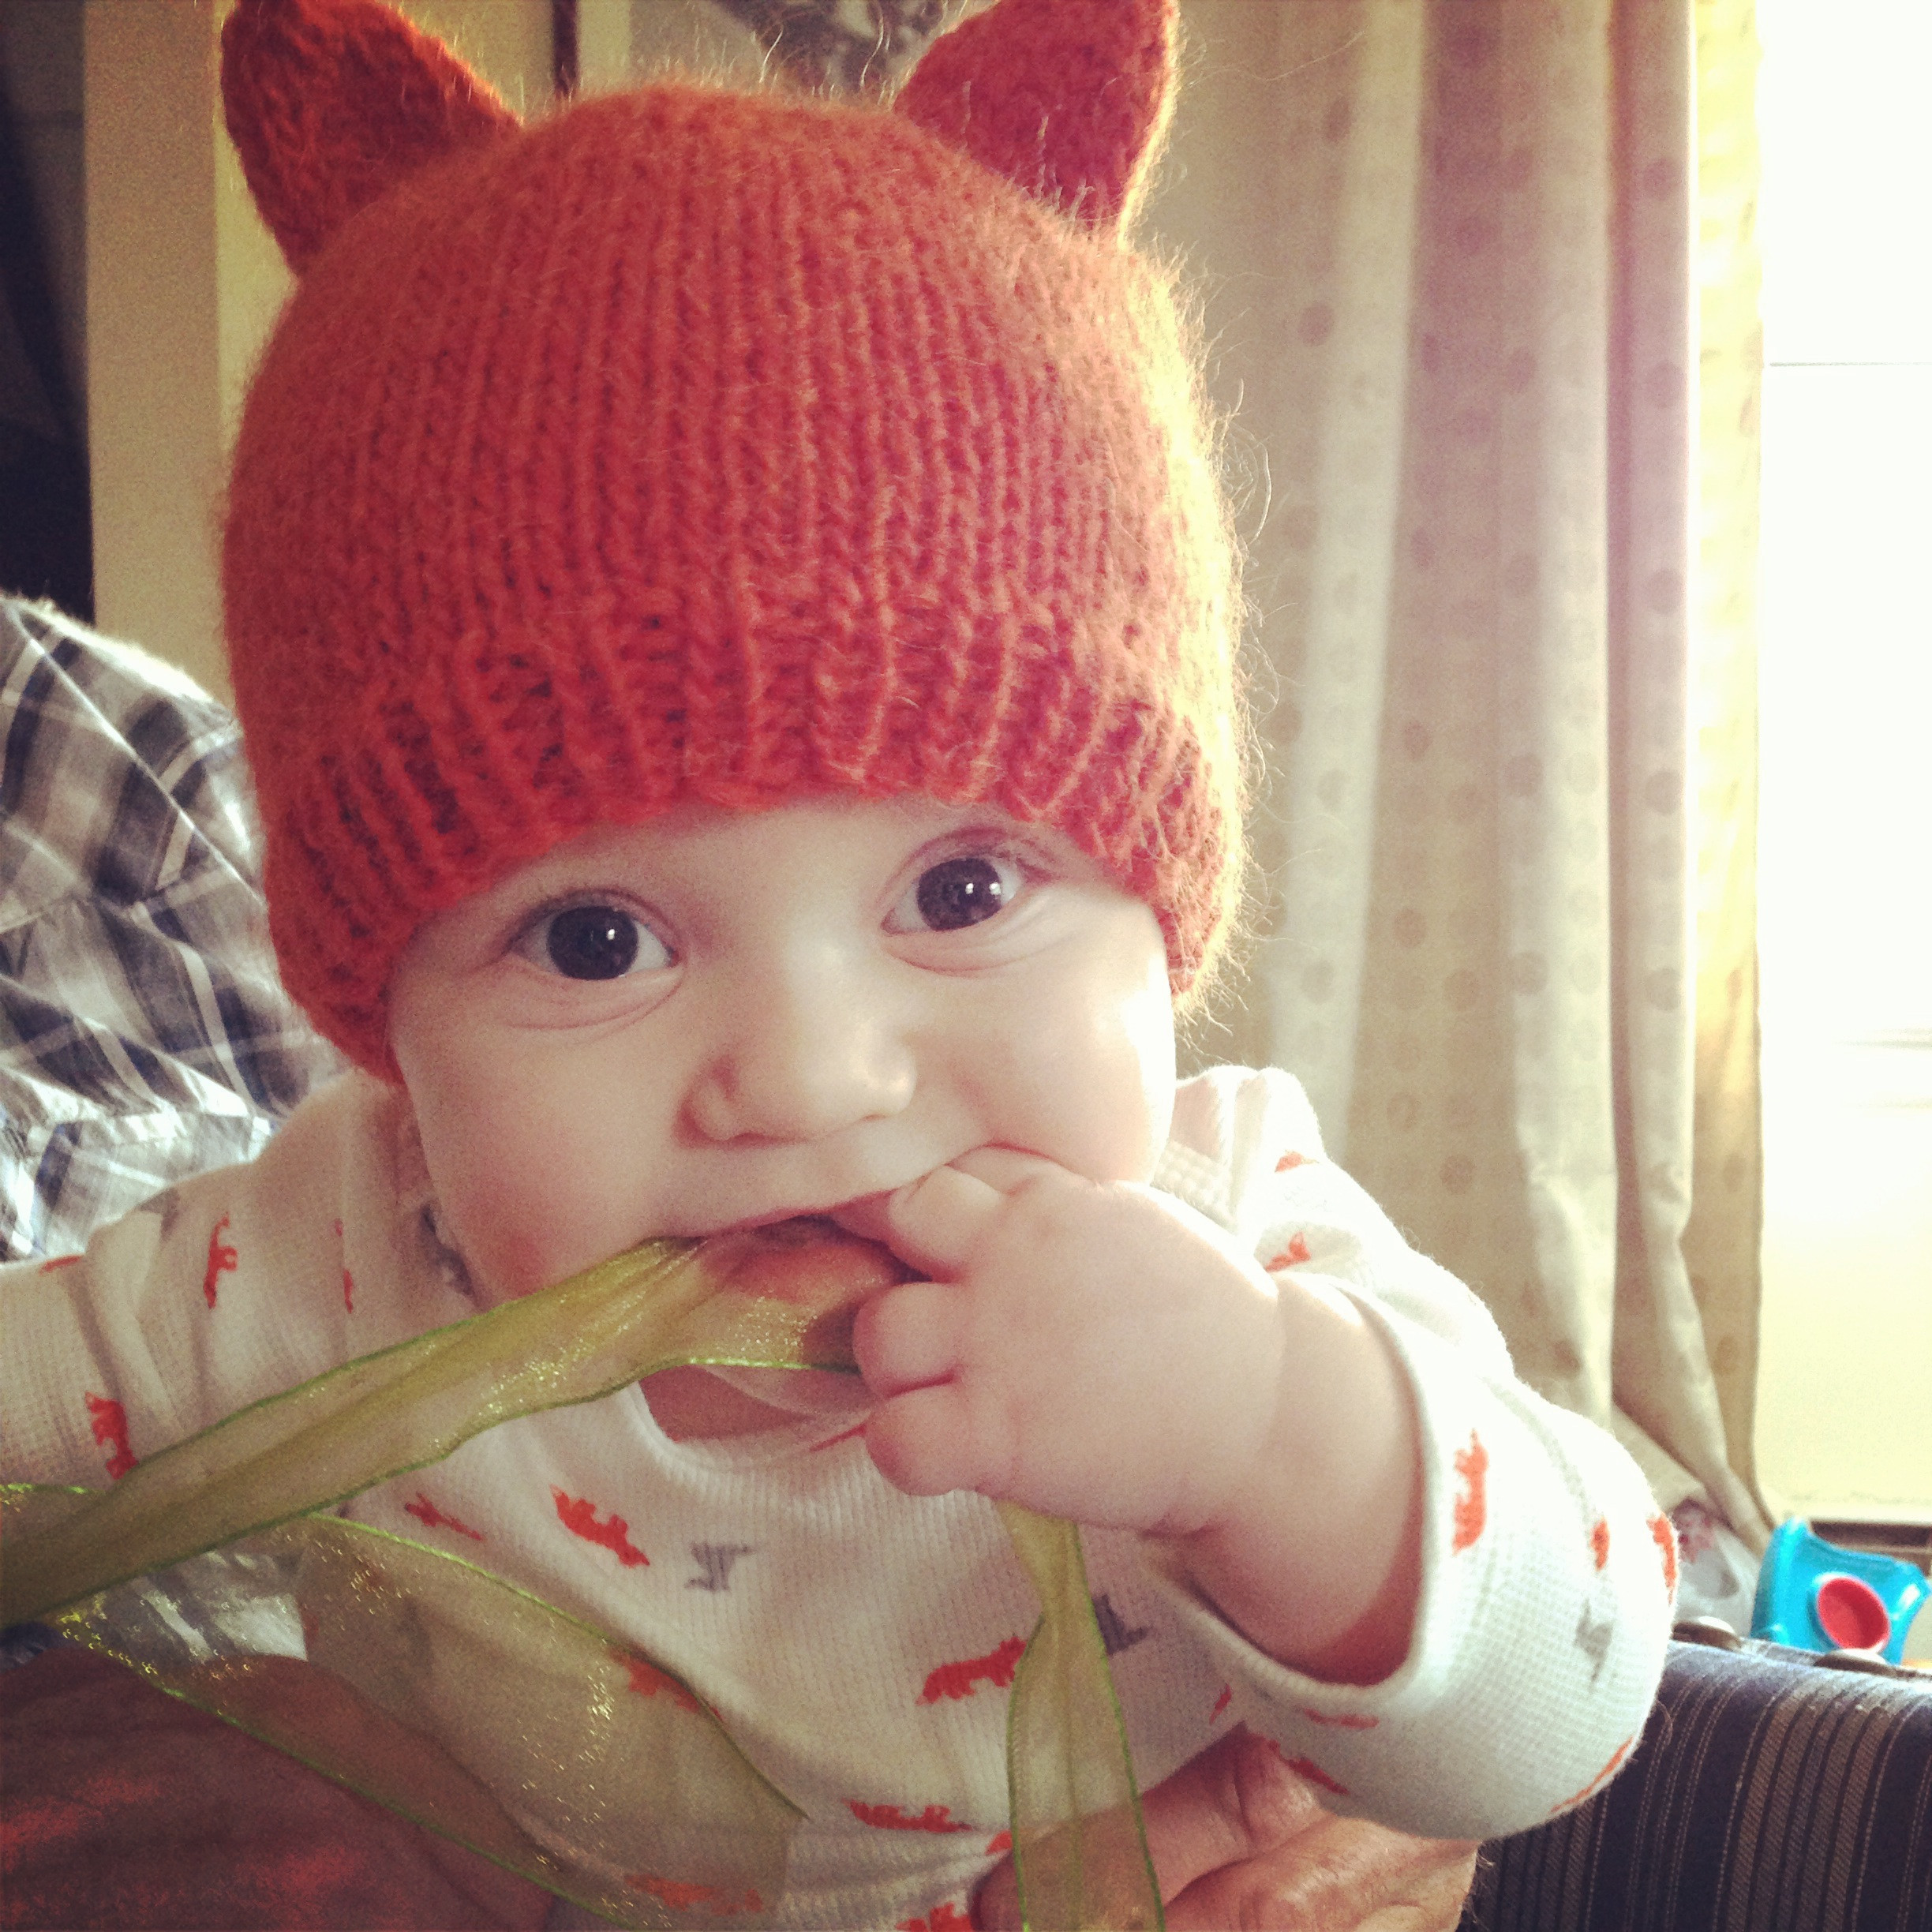 Easy Baby Knitting Patterns Awesome Knit Nat Simple Fox Hat Free Pattern Of Innovative 50 Photos Easy Baby Knitting Patterns